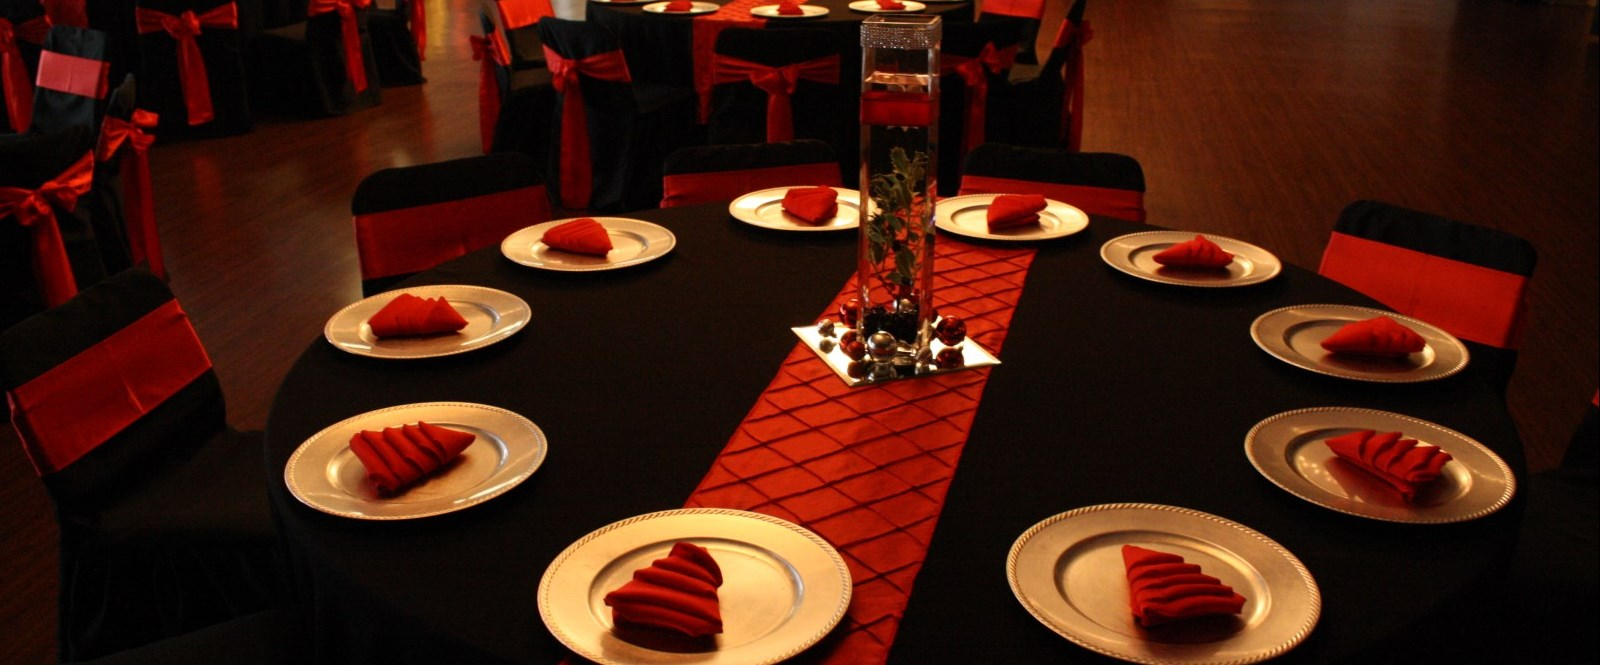 Tables covered in red and black decorations in cornwall meeting rooms